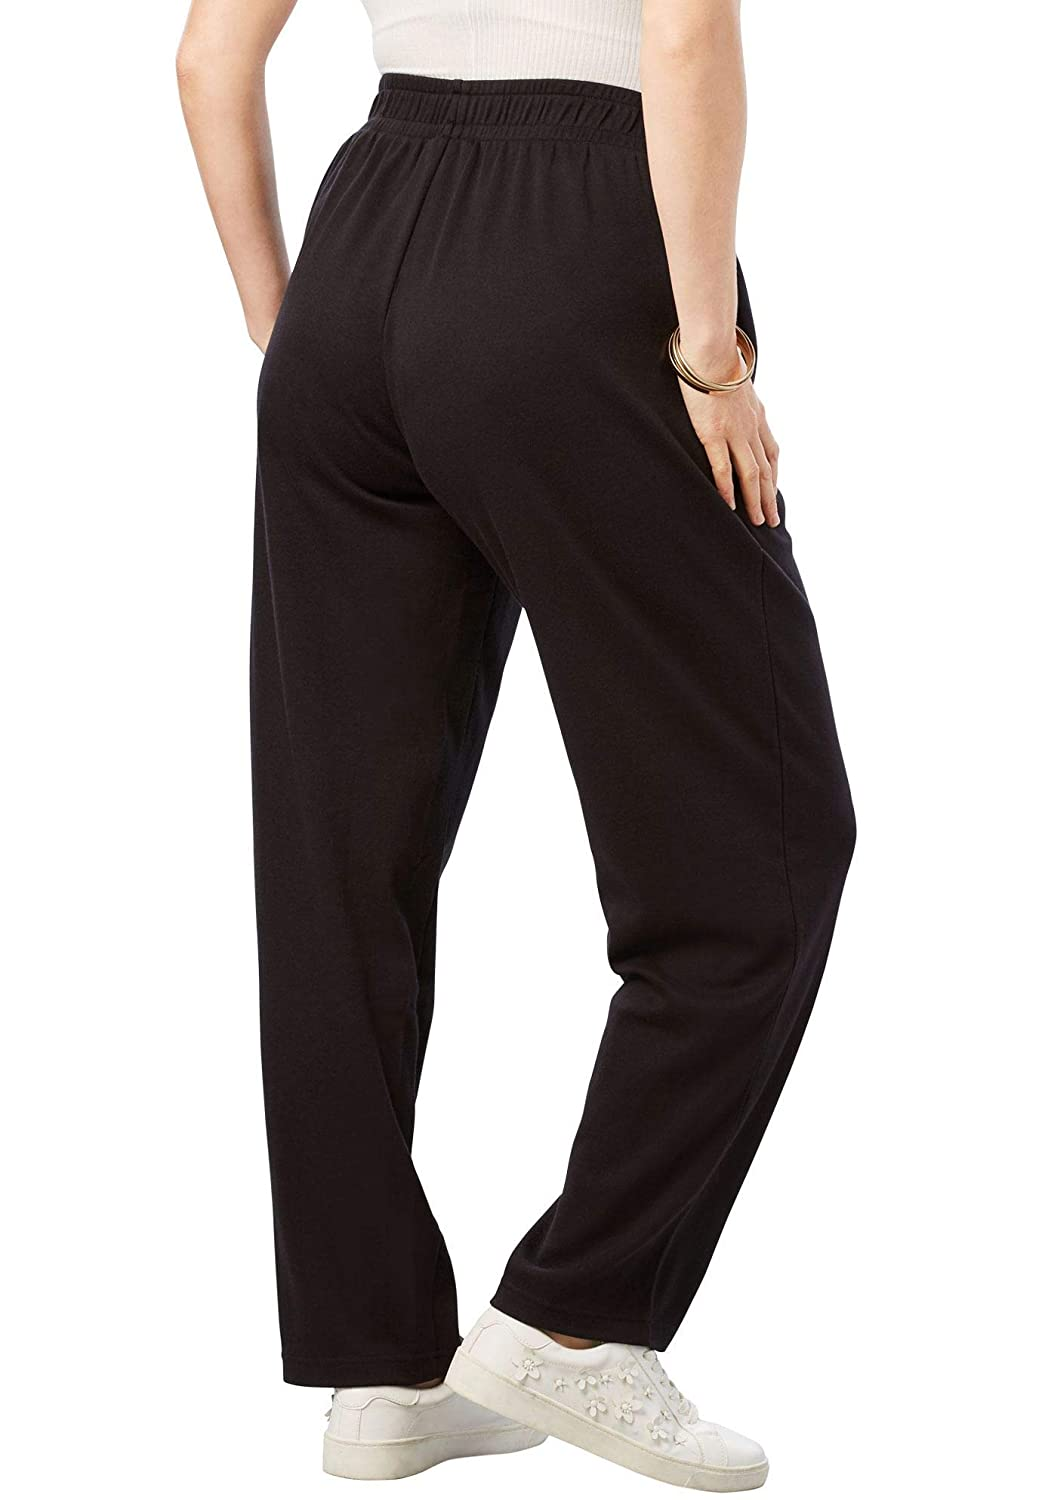 61b2f74513a Roamans Women s Plus Size Straight Leg Soft Knit Pant at Amazon Women s  Clothing store